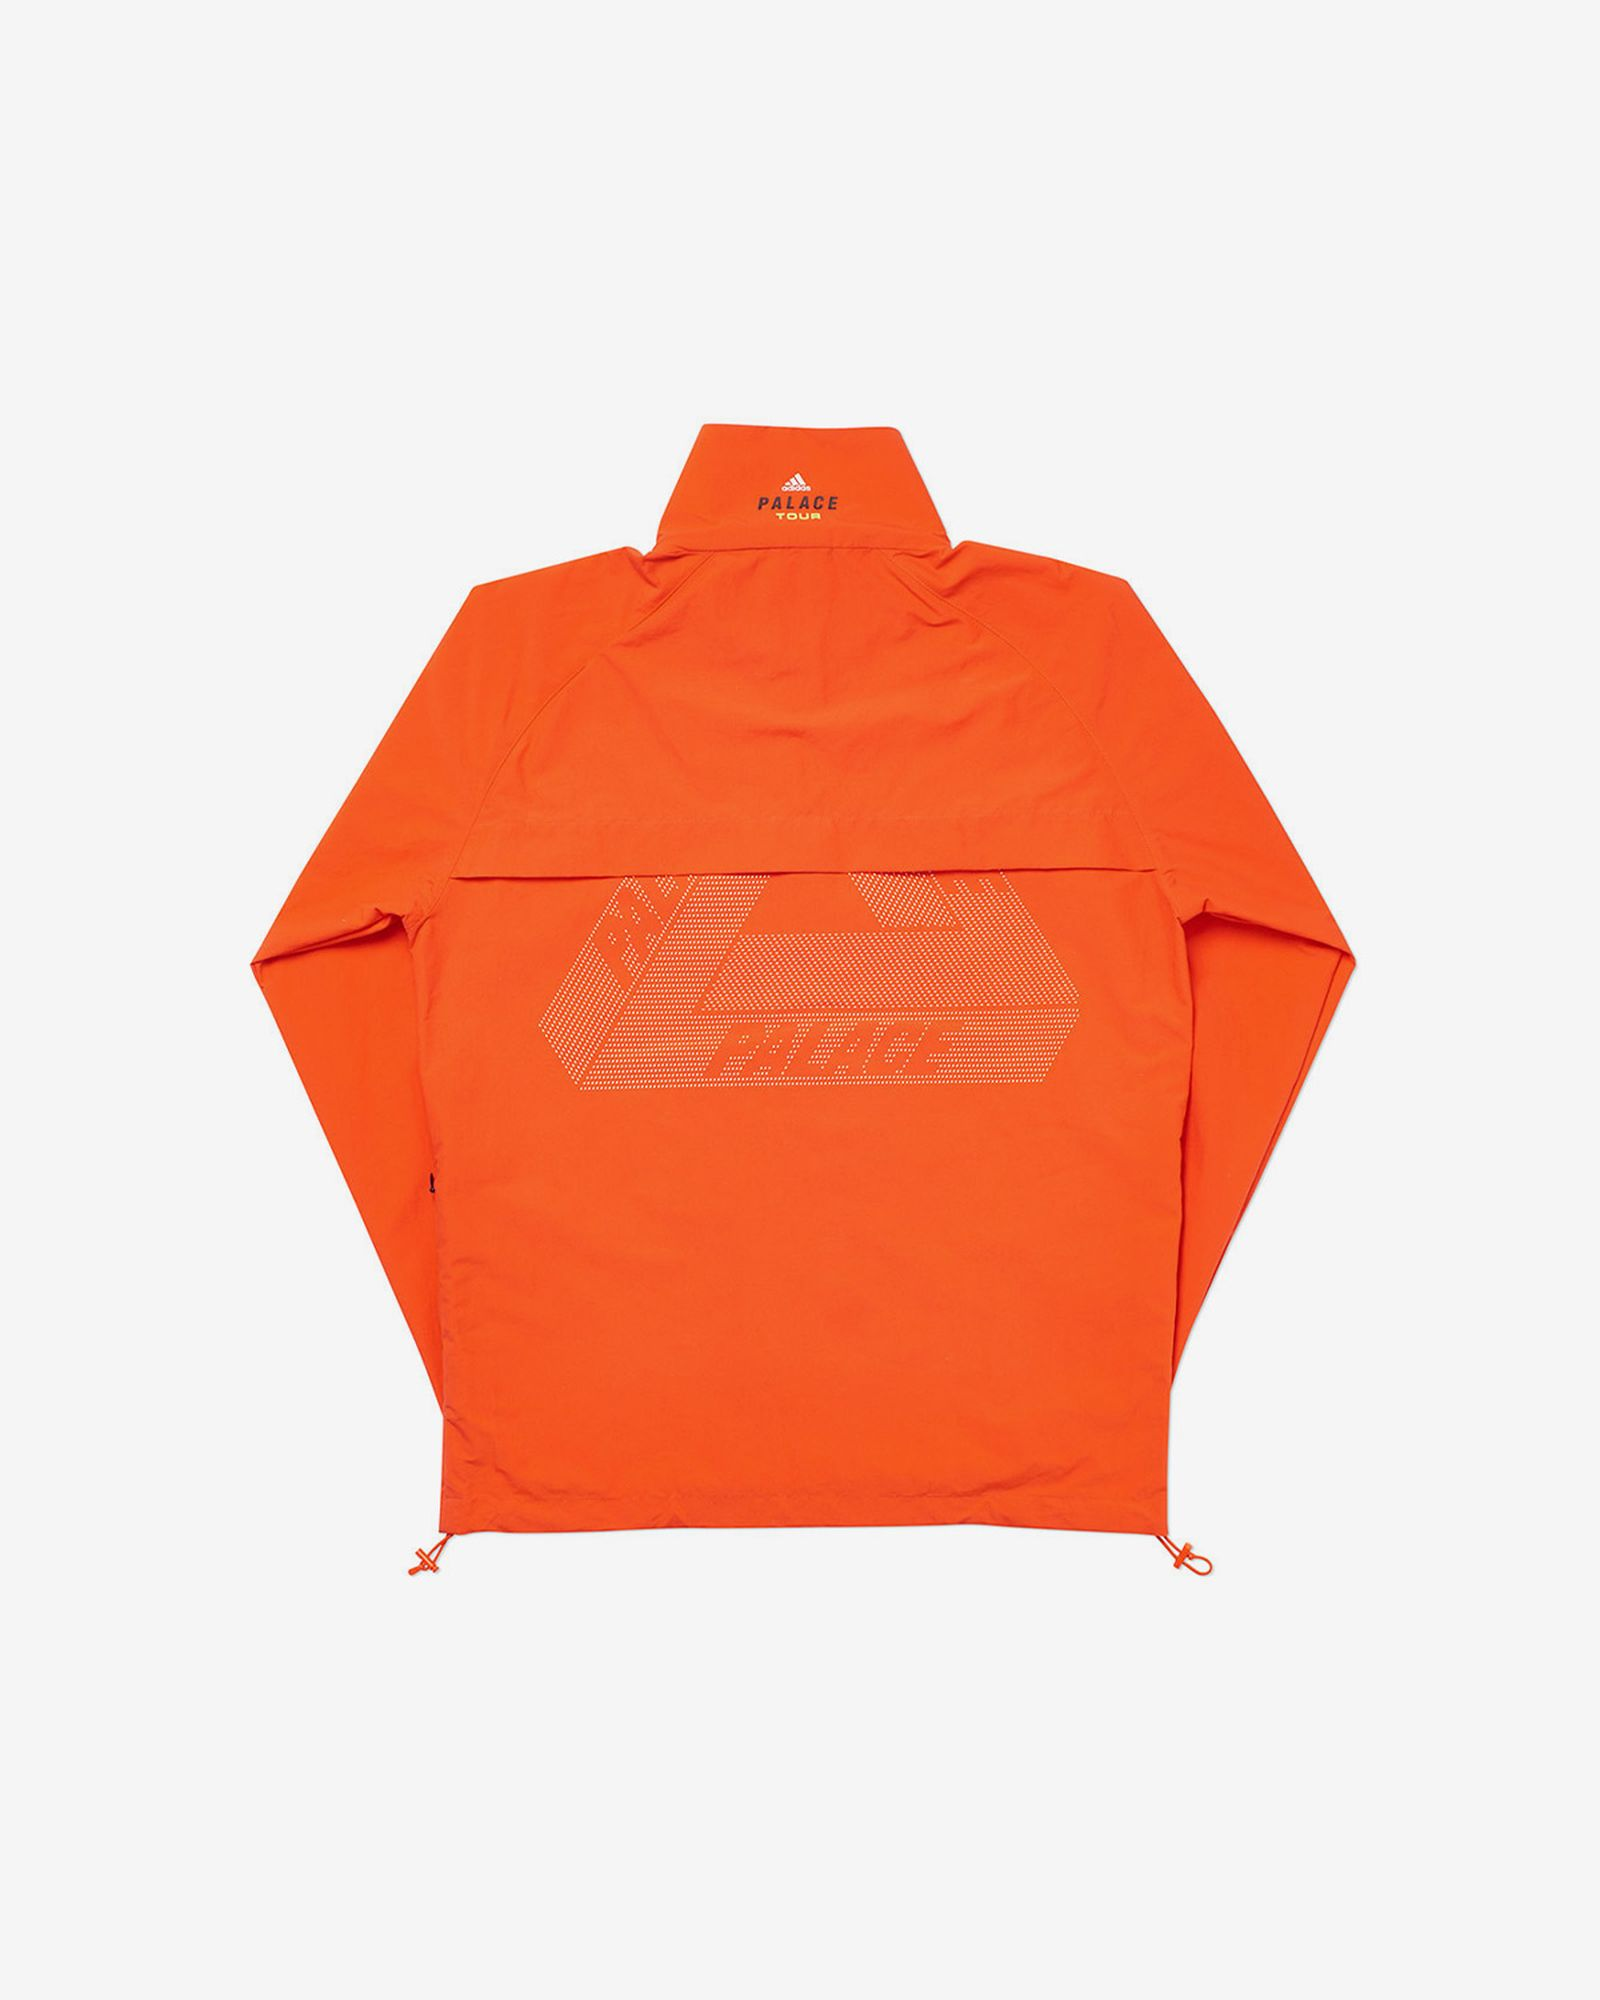 palace-adidas-golf-collaboration-official-look-08